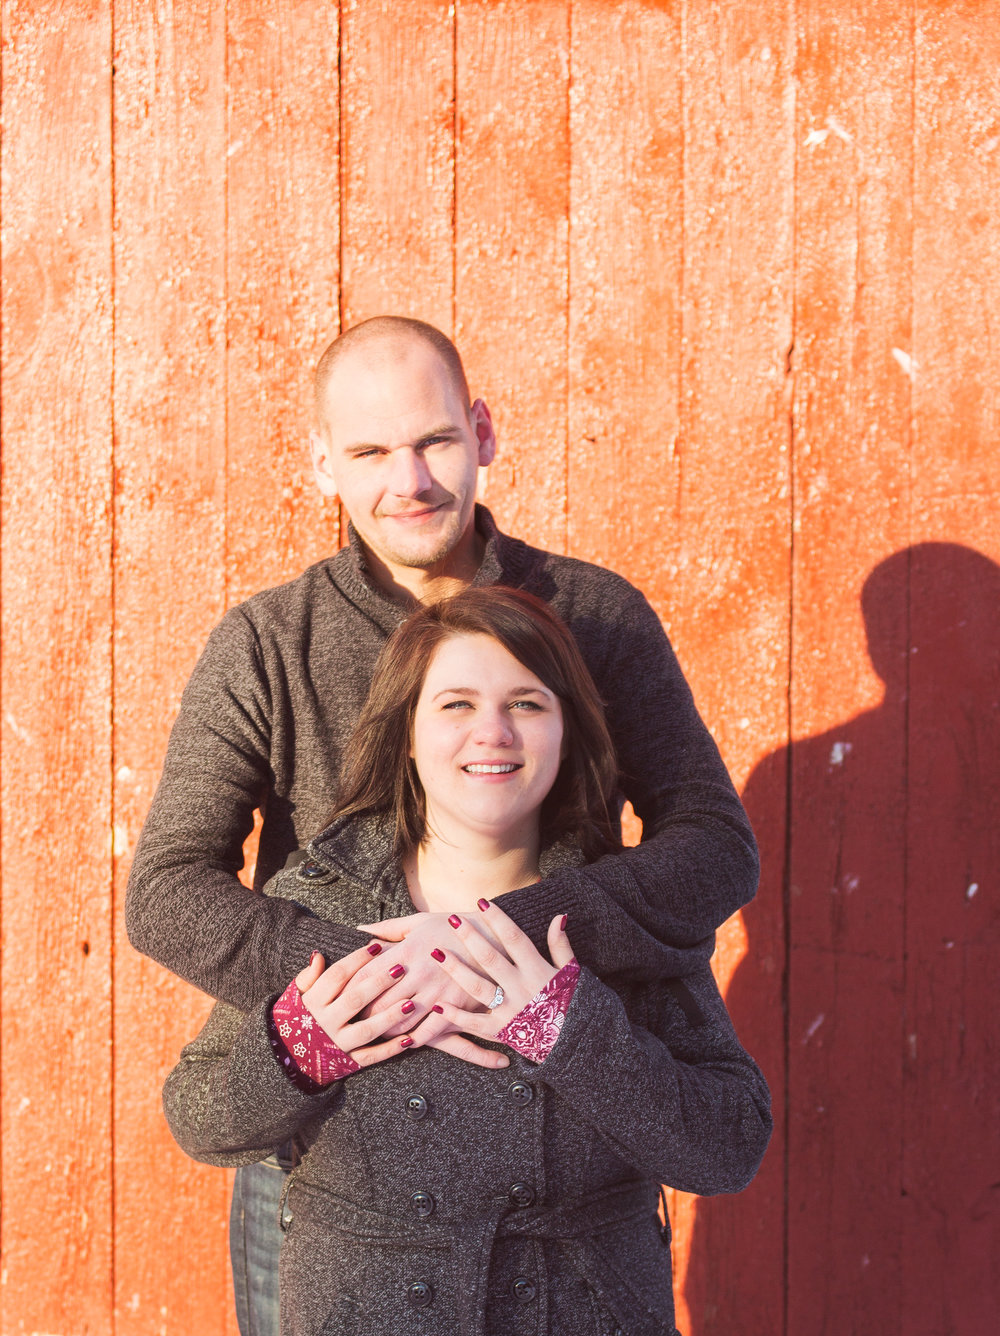 Chelsea and Daniel Engagement Session - Blog Post-4.jpg